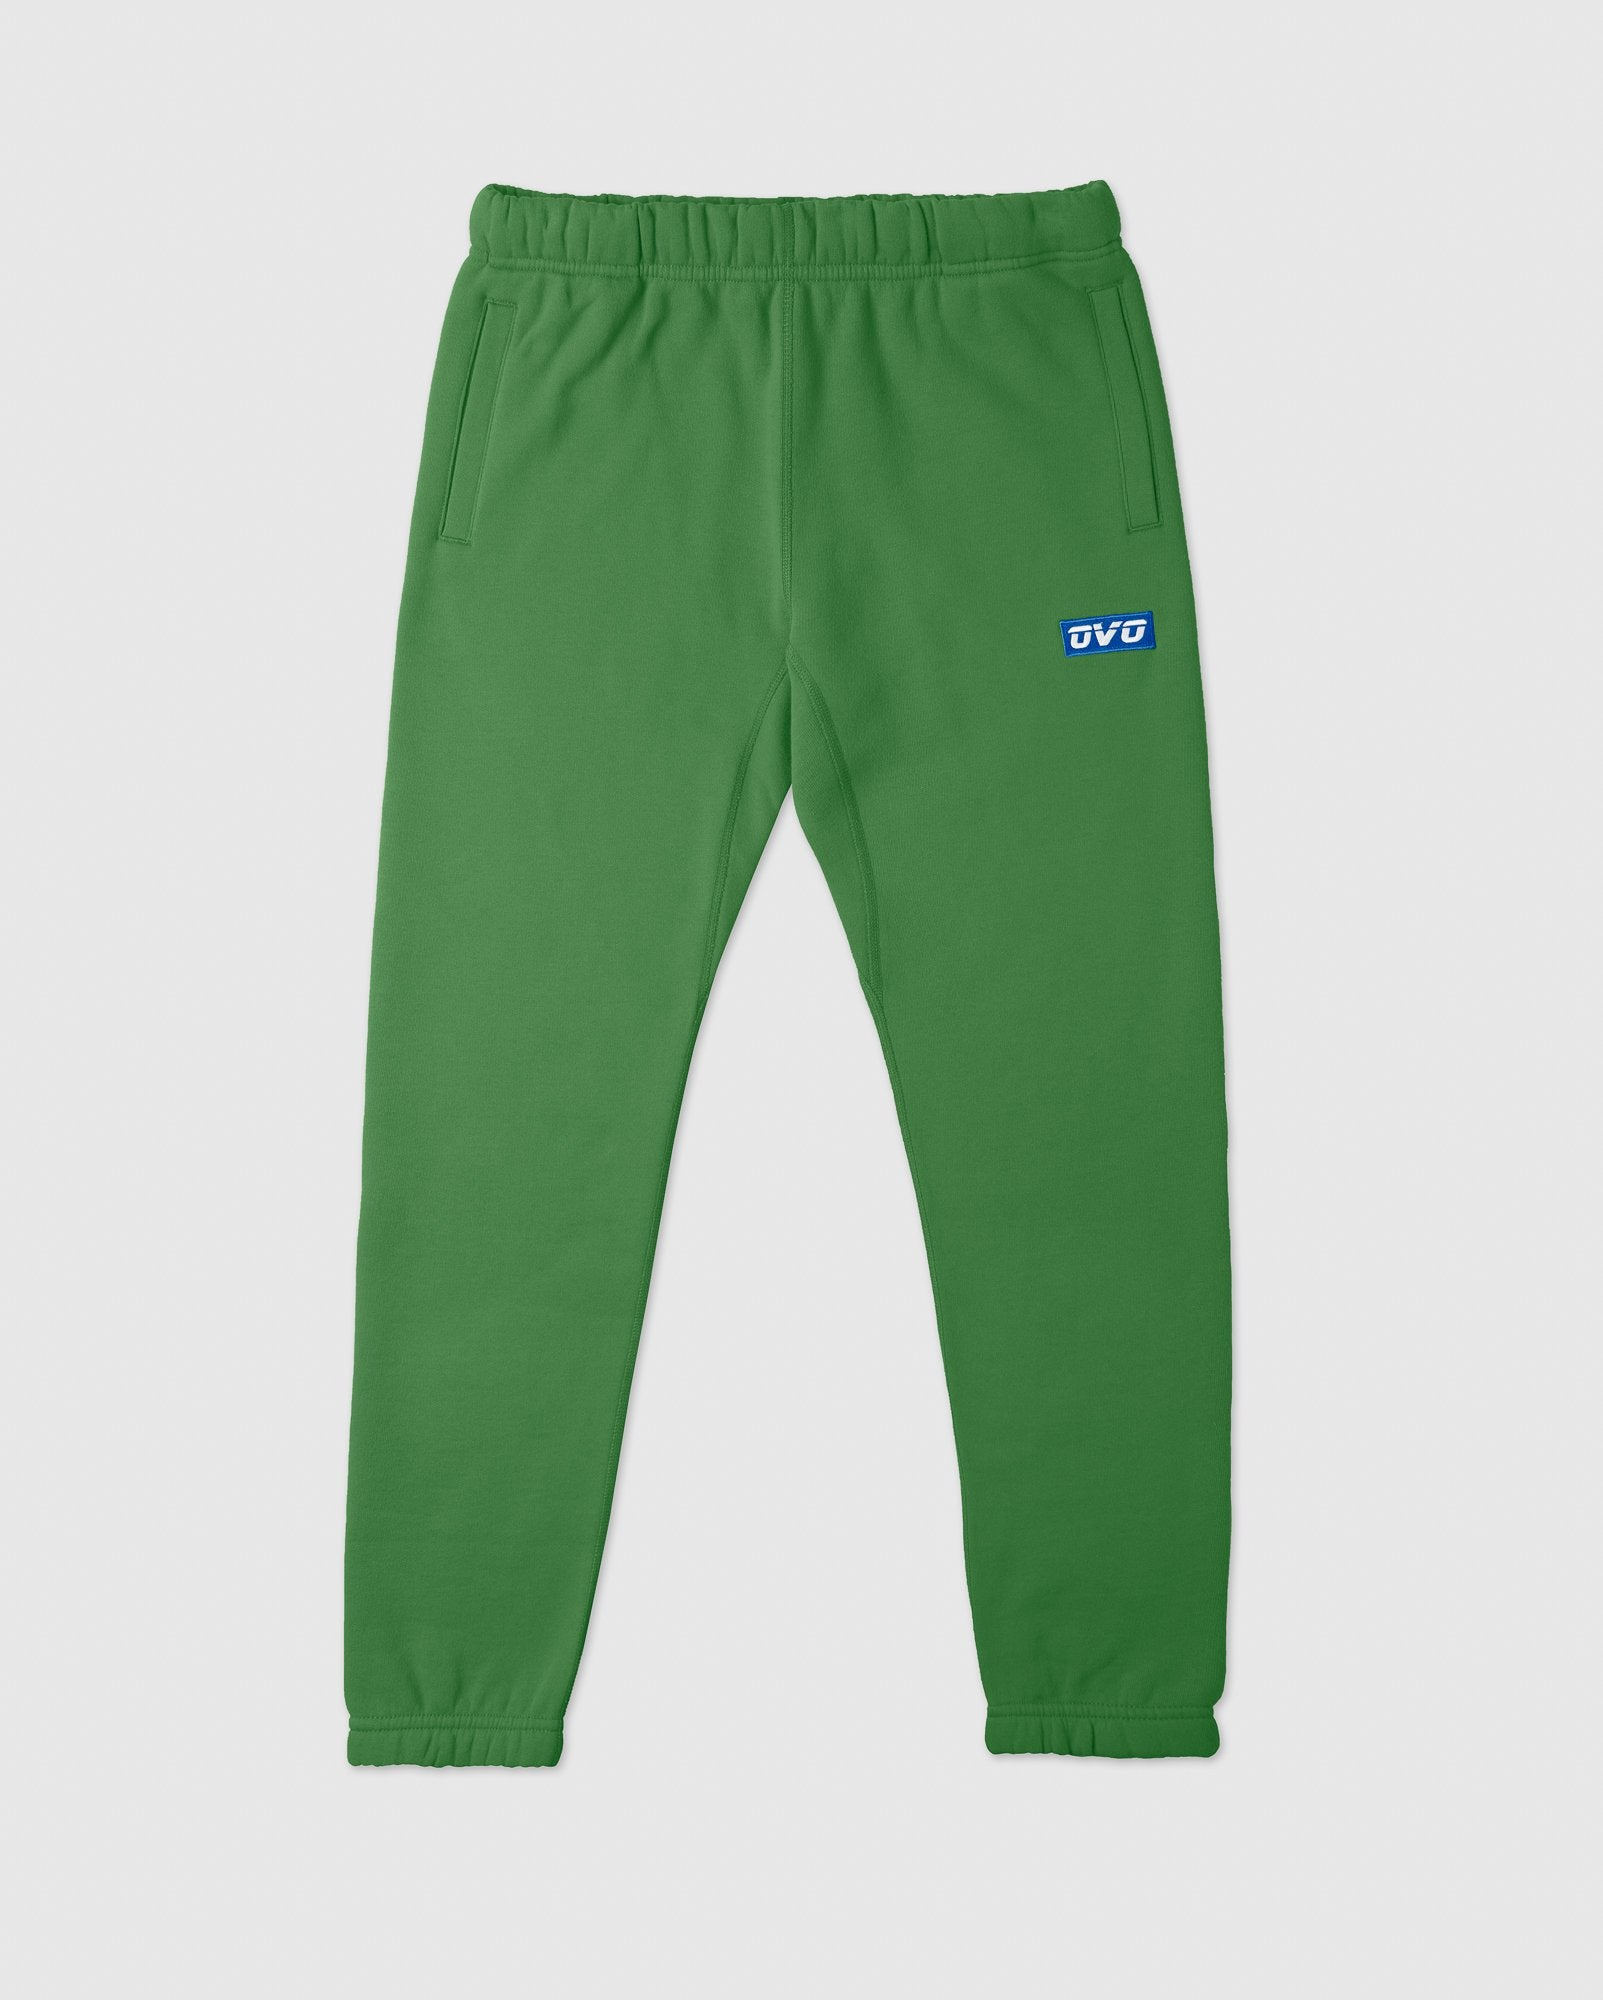 EMBROIDERED RUNNER LOGO SWEATPANT - FERN IMAGE #1